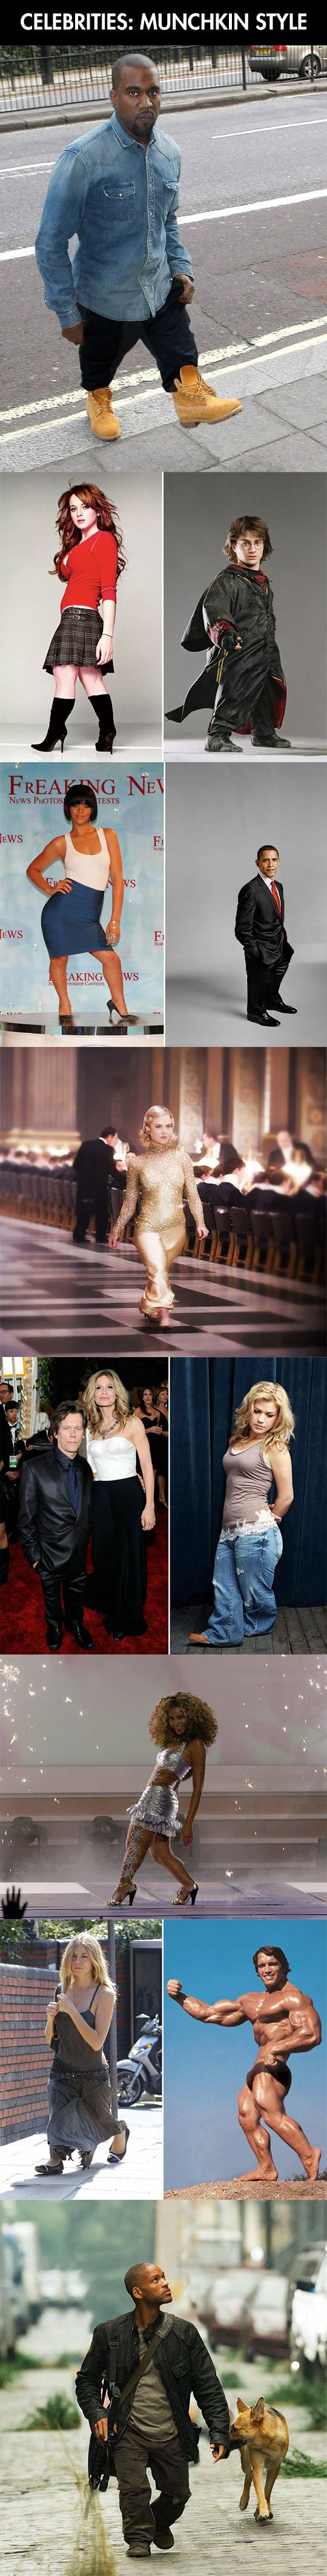 If celebrities were shorter  - funny pictures #funnypictures